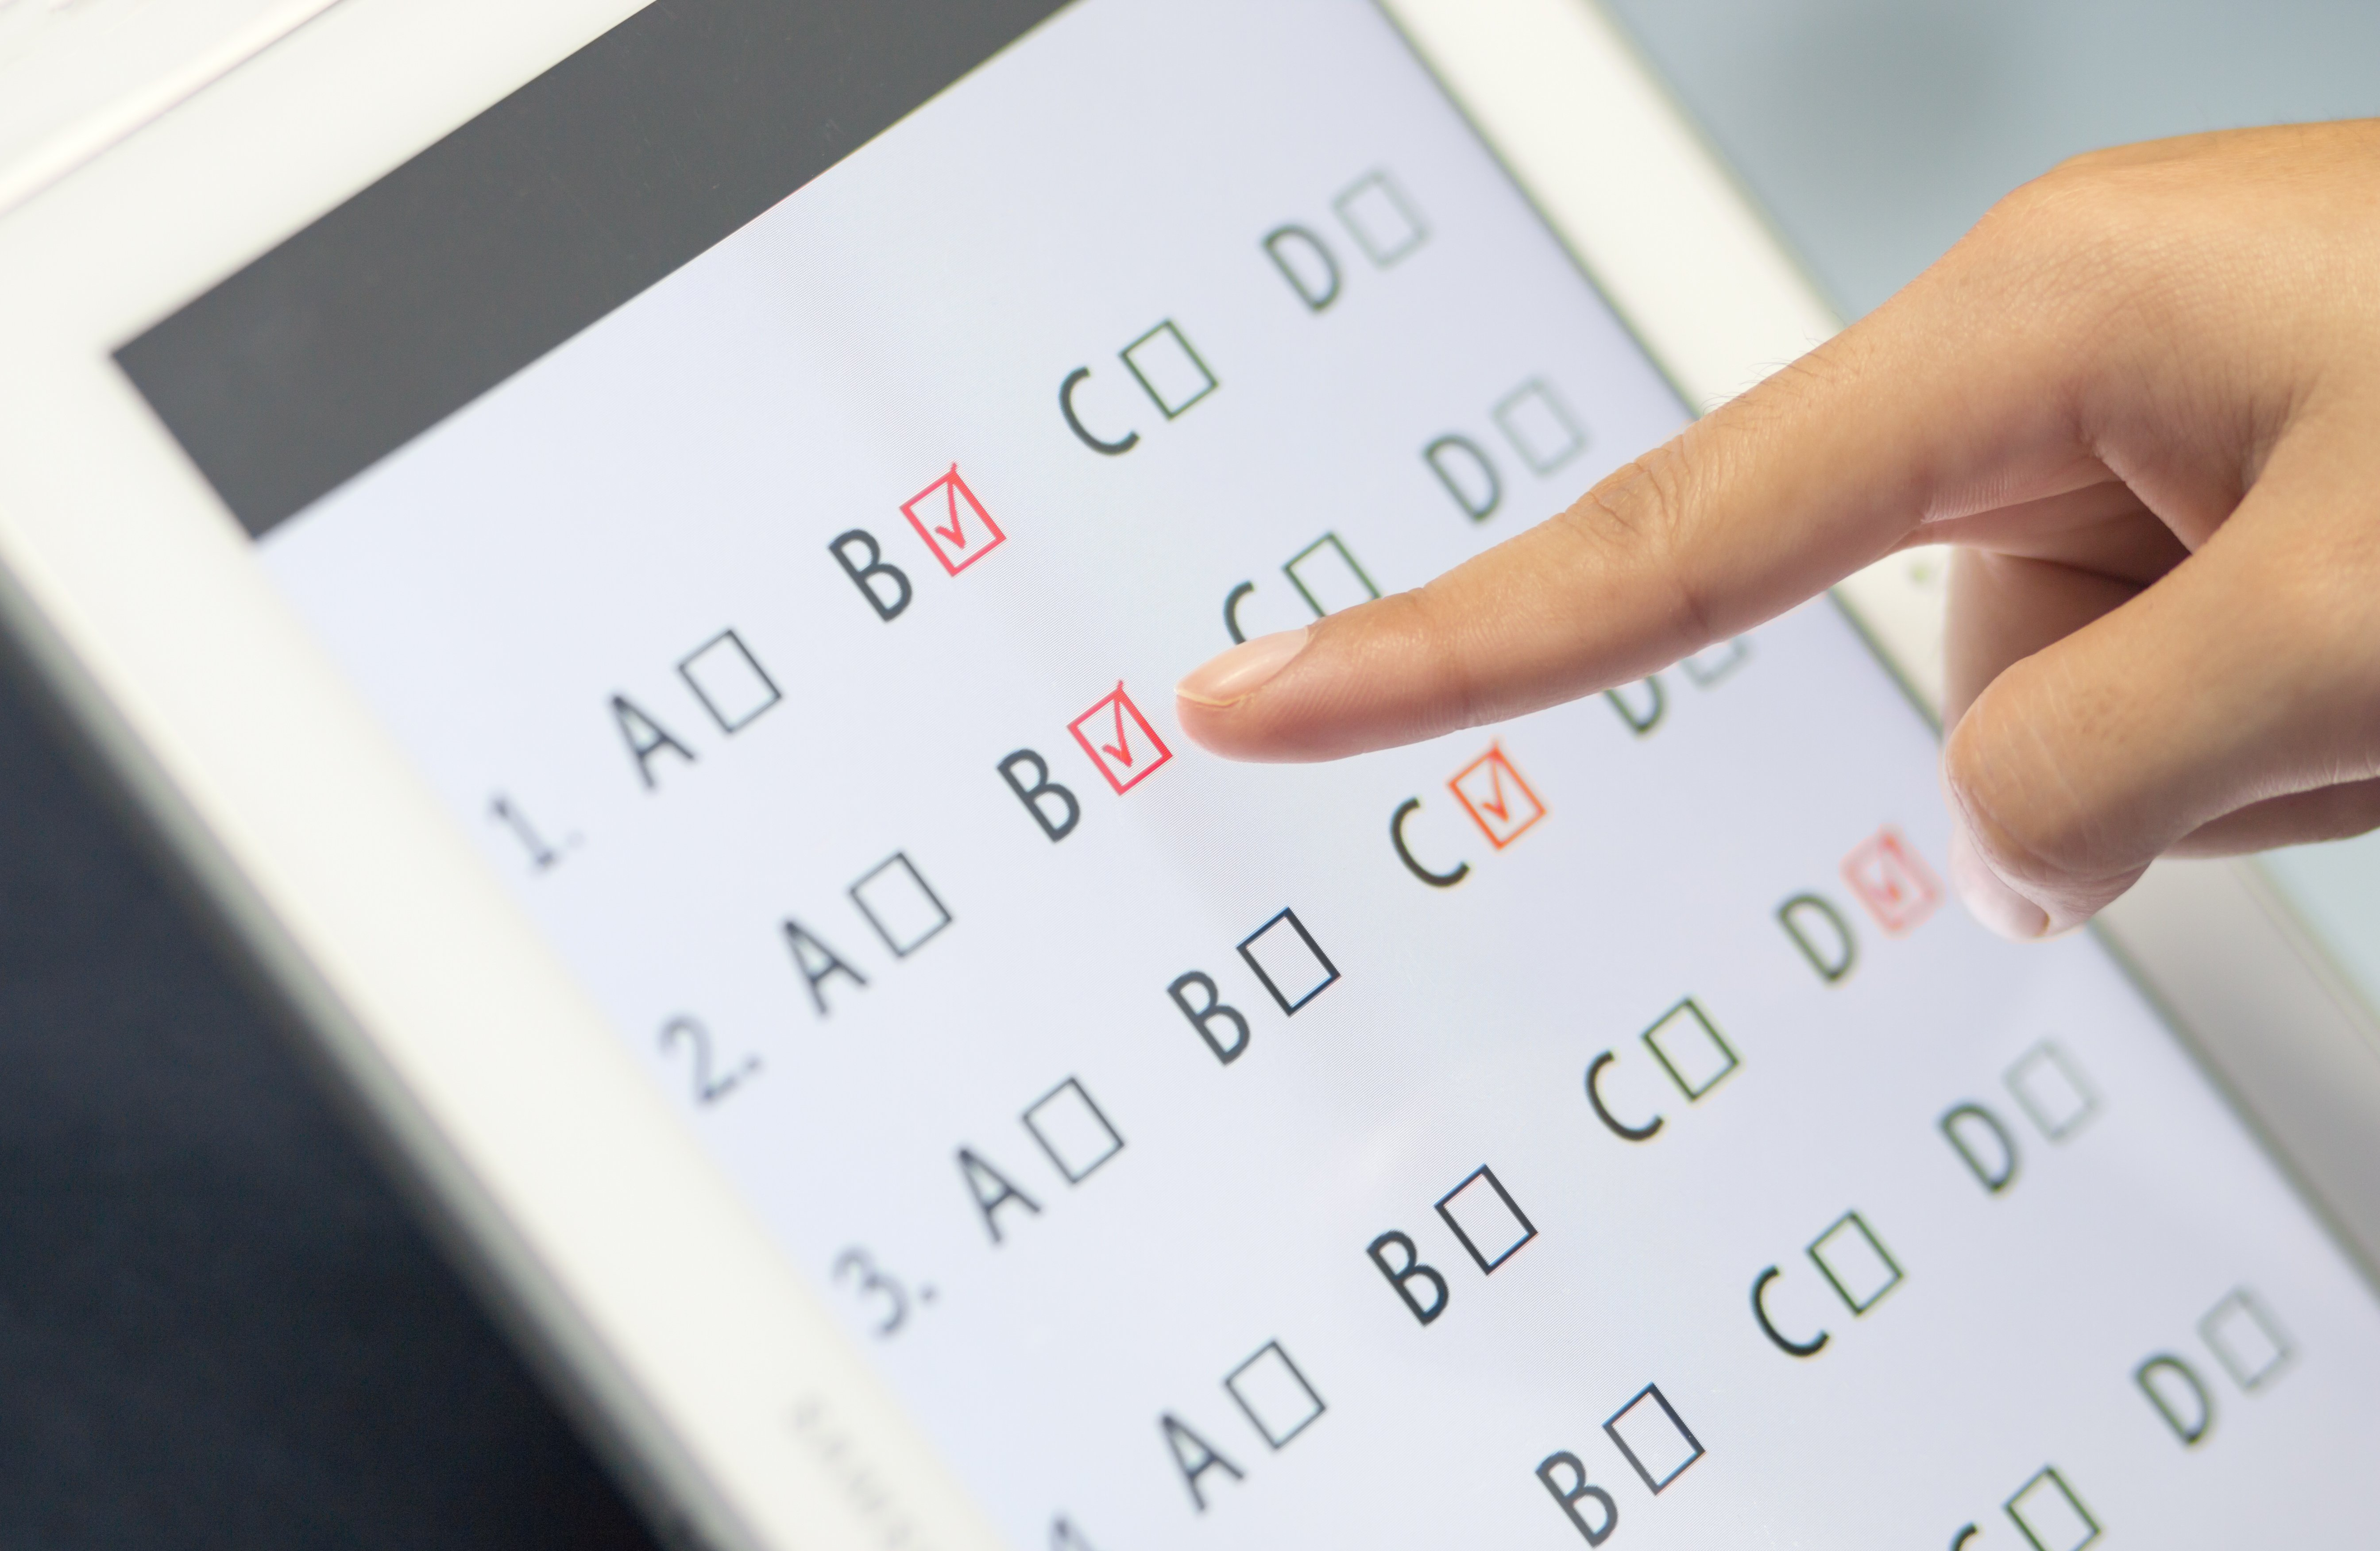 What You Need to Know About the Digital LSAT